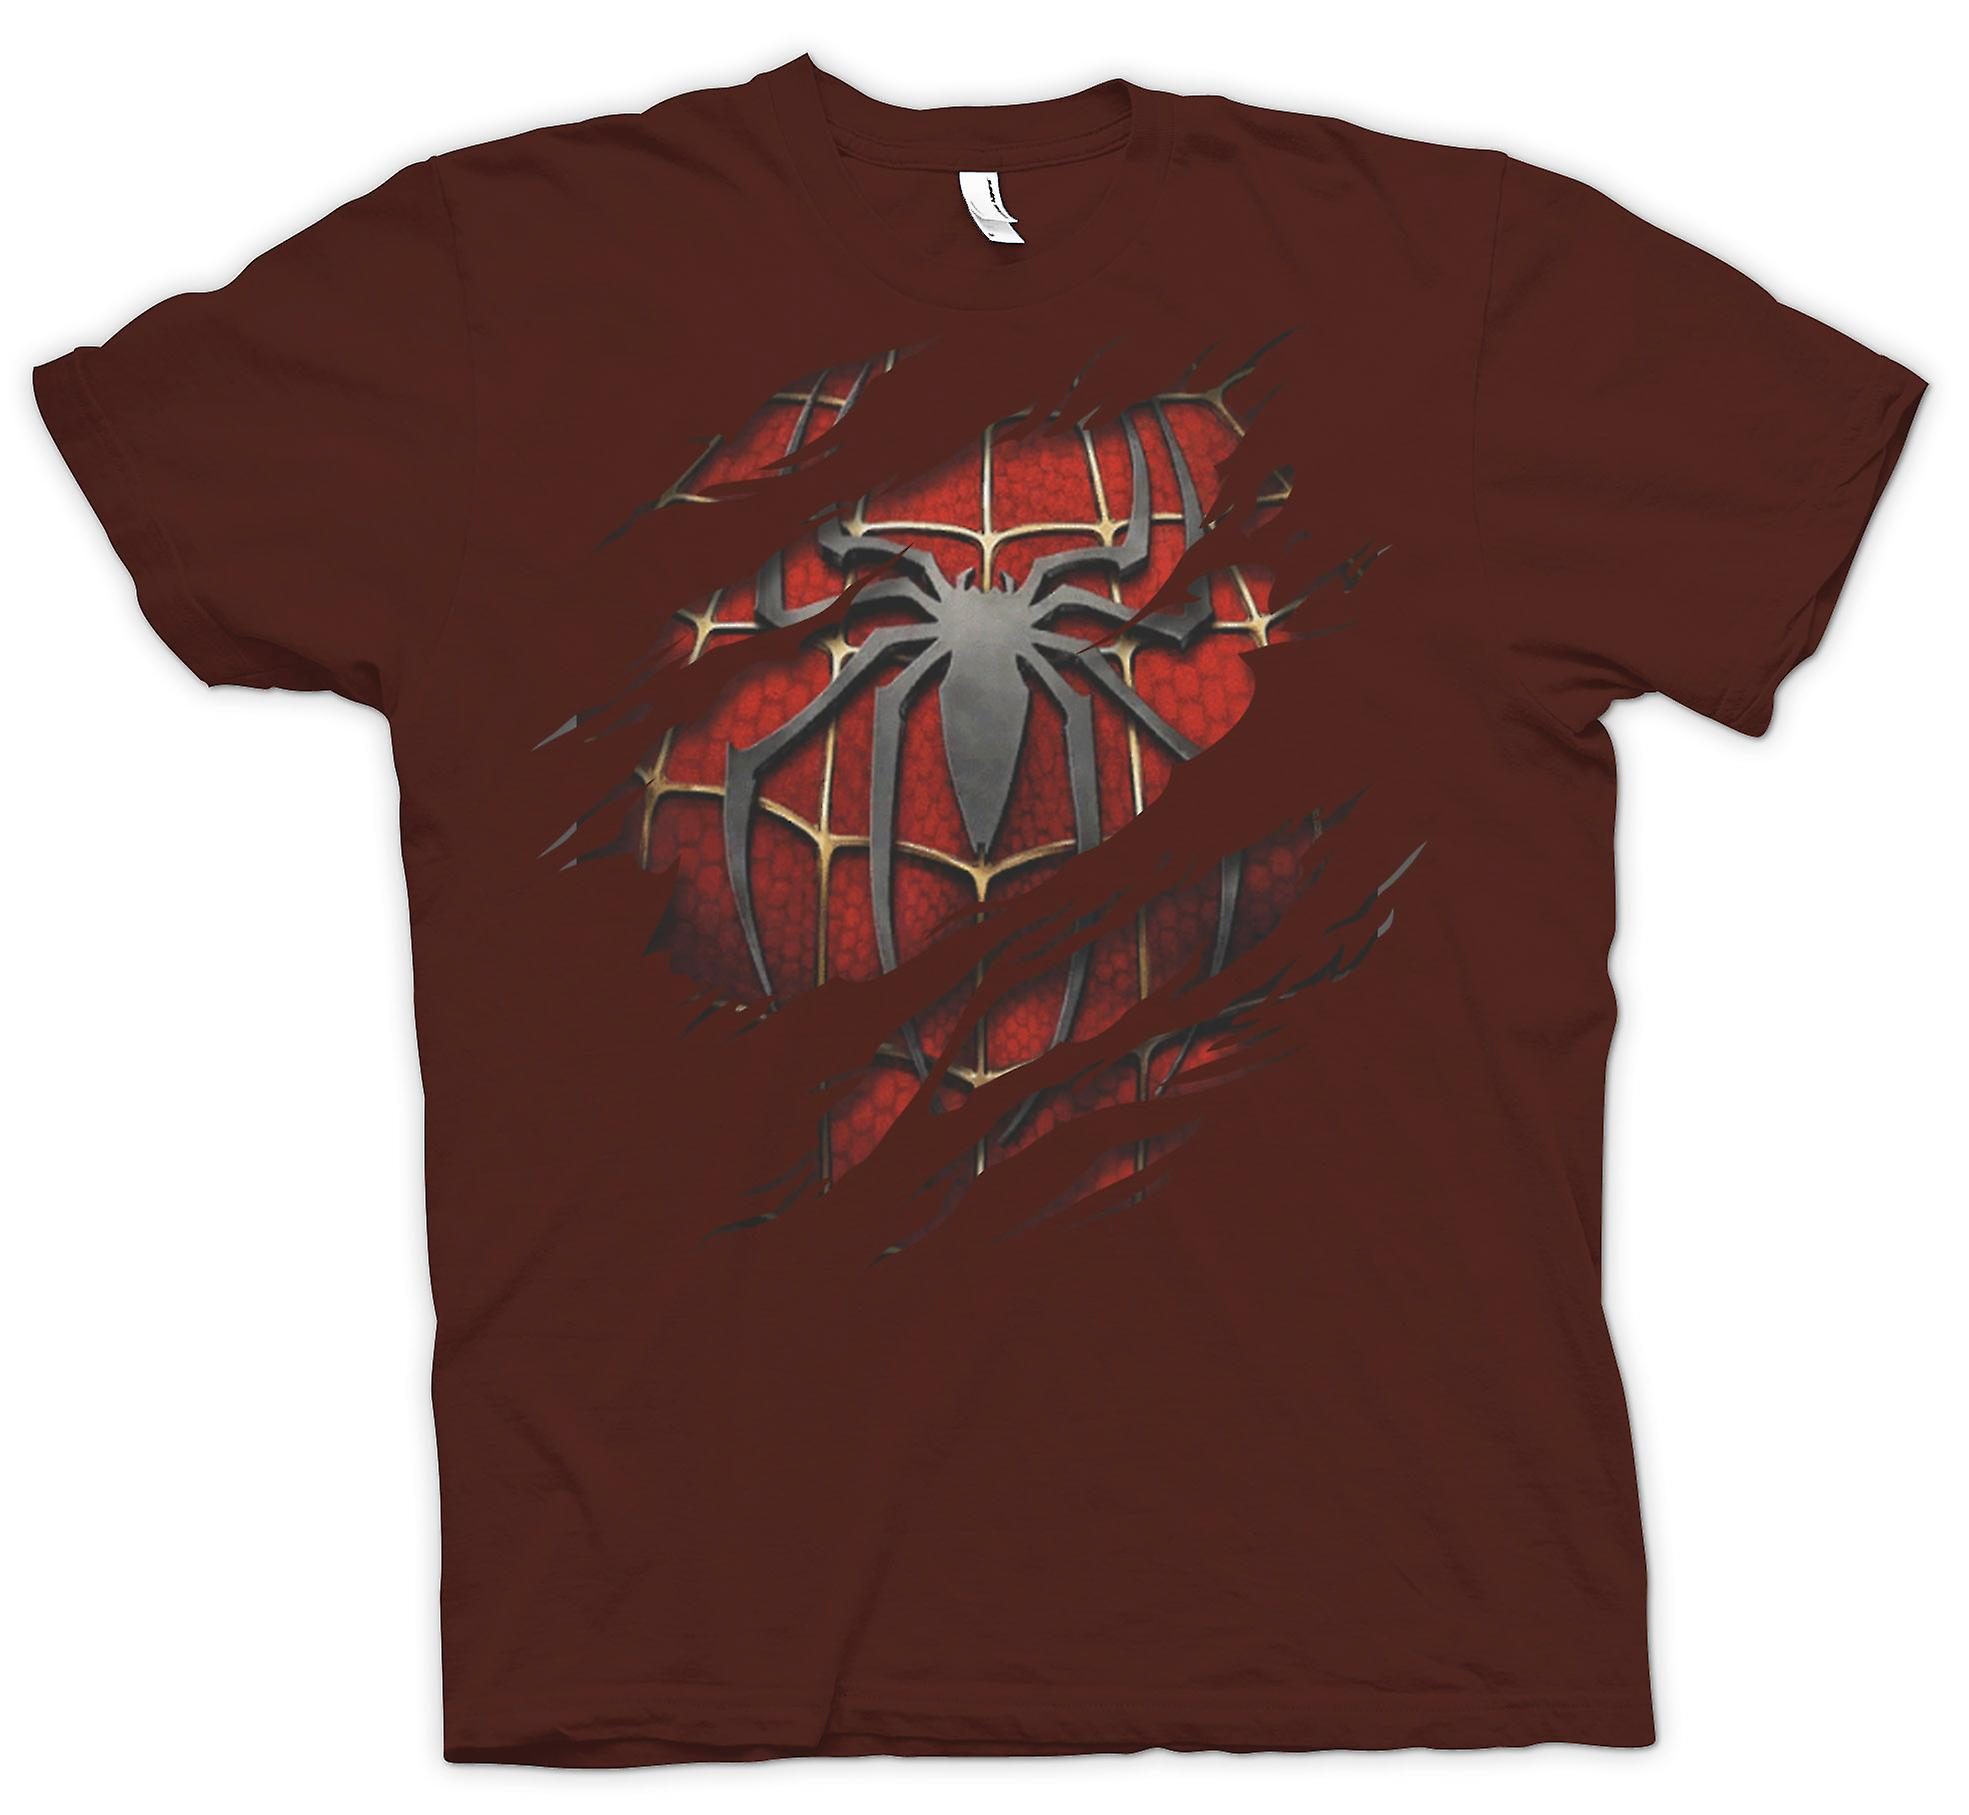 Mens T-shirt - Spiderman Under Shirt Effect - Action Superhero